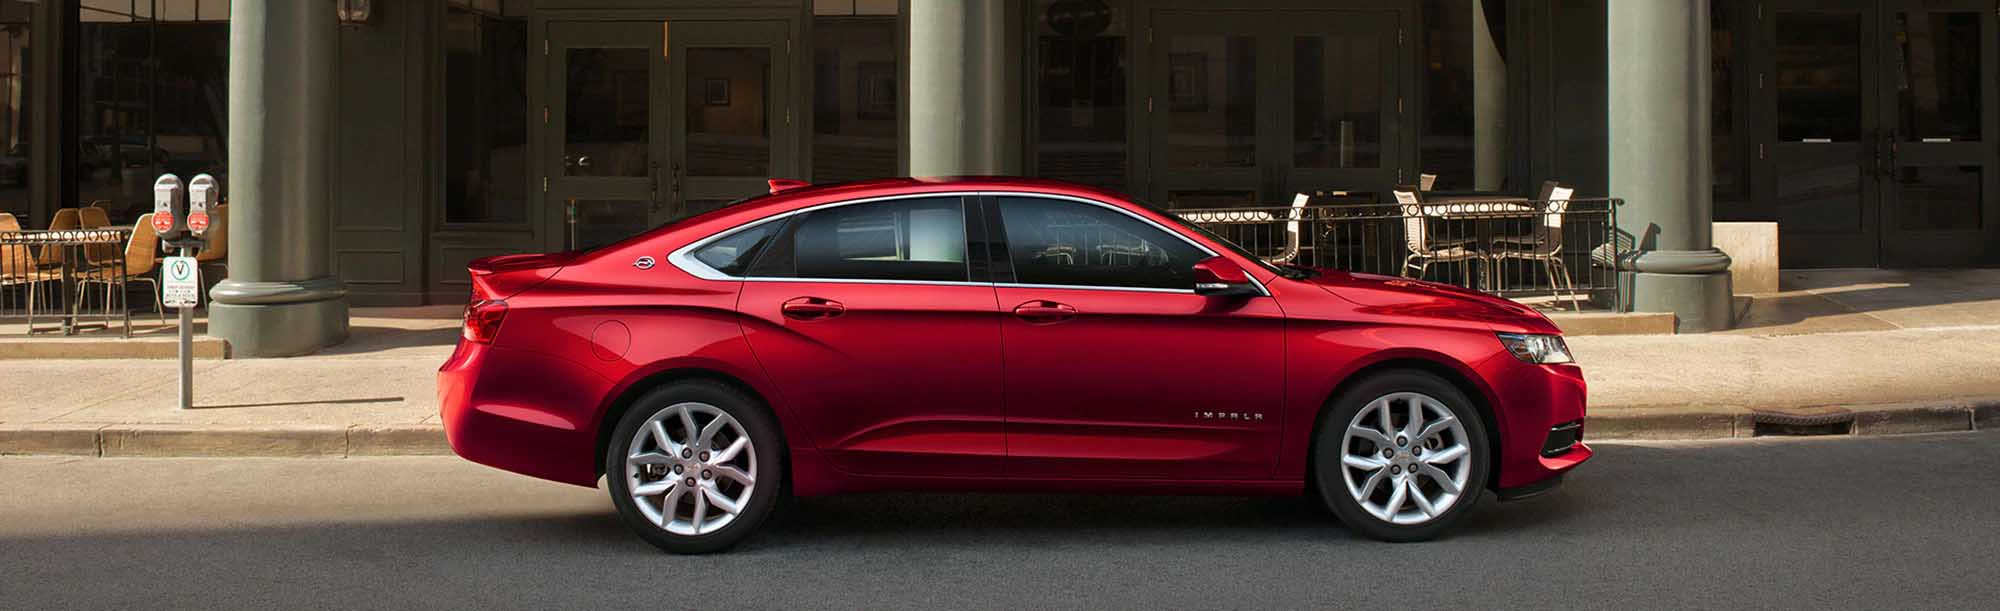 Explore The Features Of The New 2020 Chevrolet Impala Near Atlanta